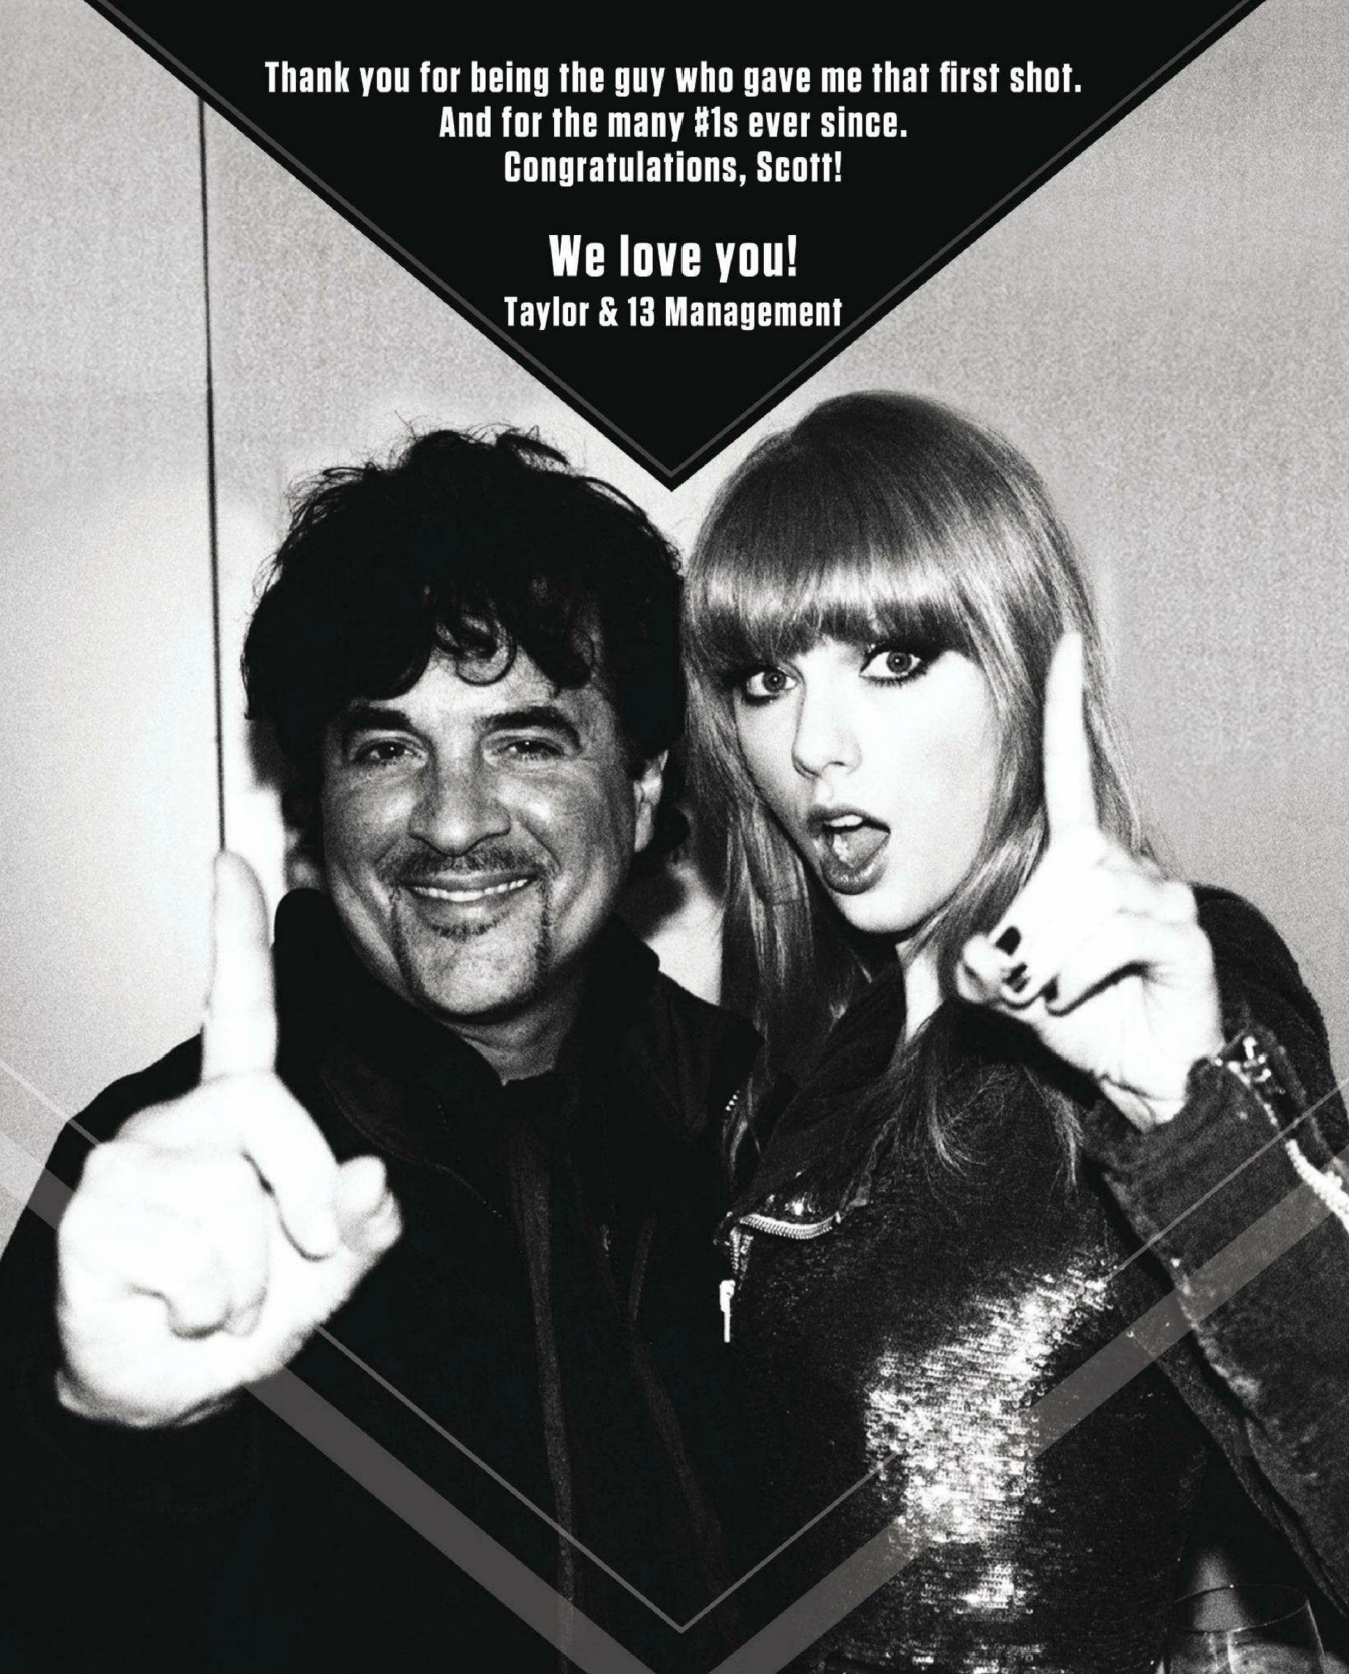 http://www.taylorpictures.net/albums/scans/2013/billboardfebruary16/001.jpg